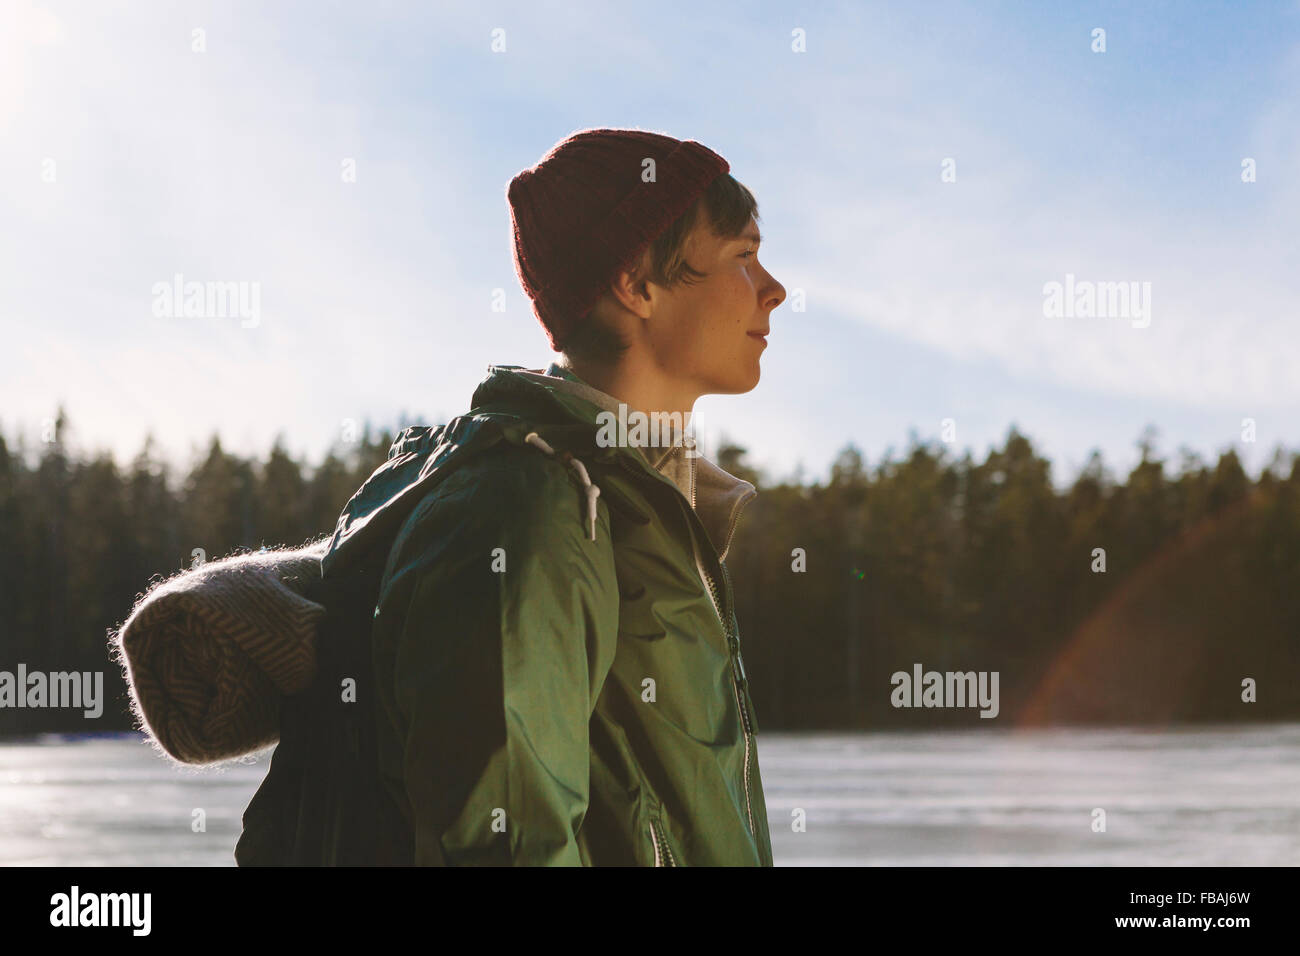 Finland, Esbo, Kvarntrask, Portrait of young man on shore of forest lake - Stock Image